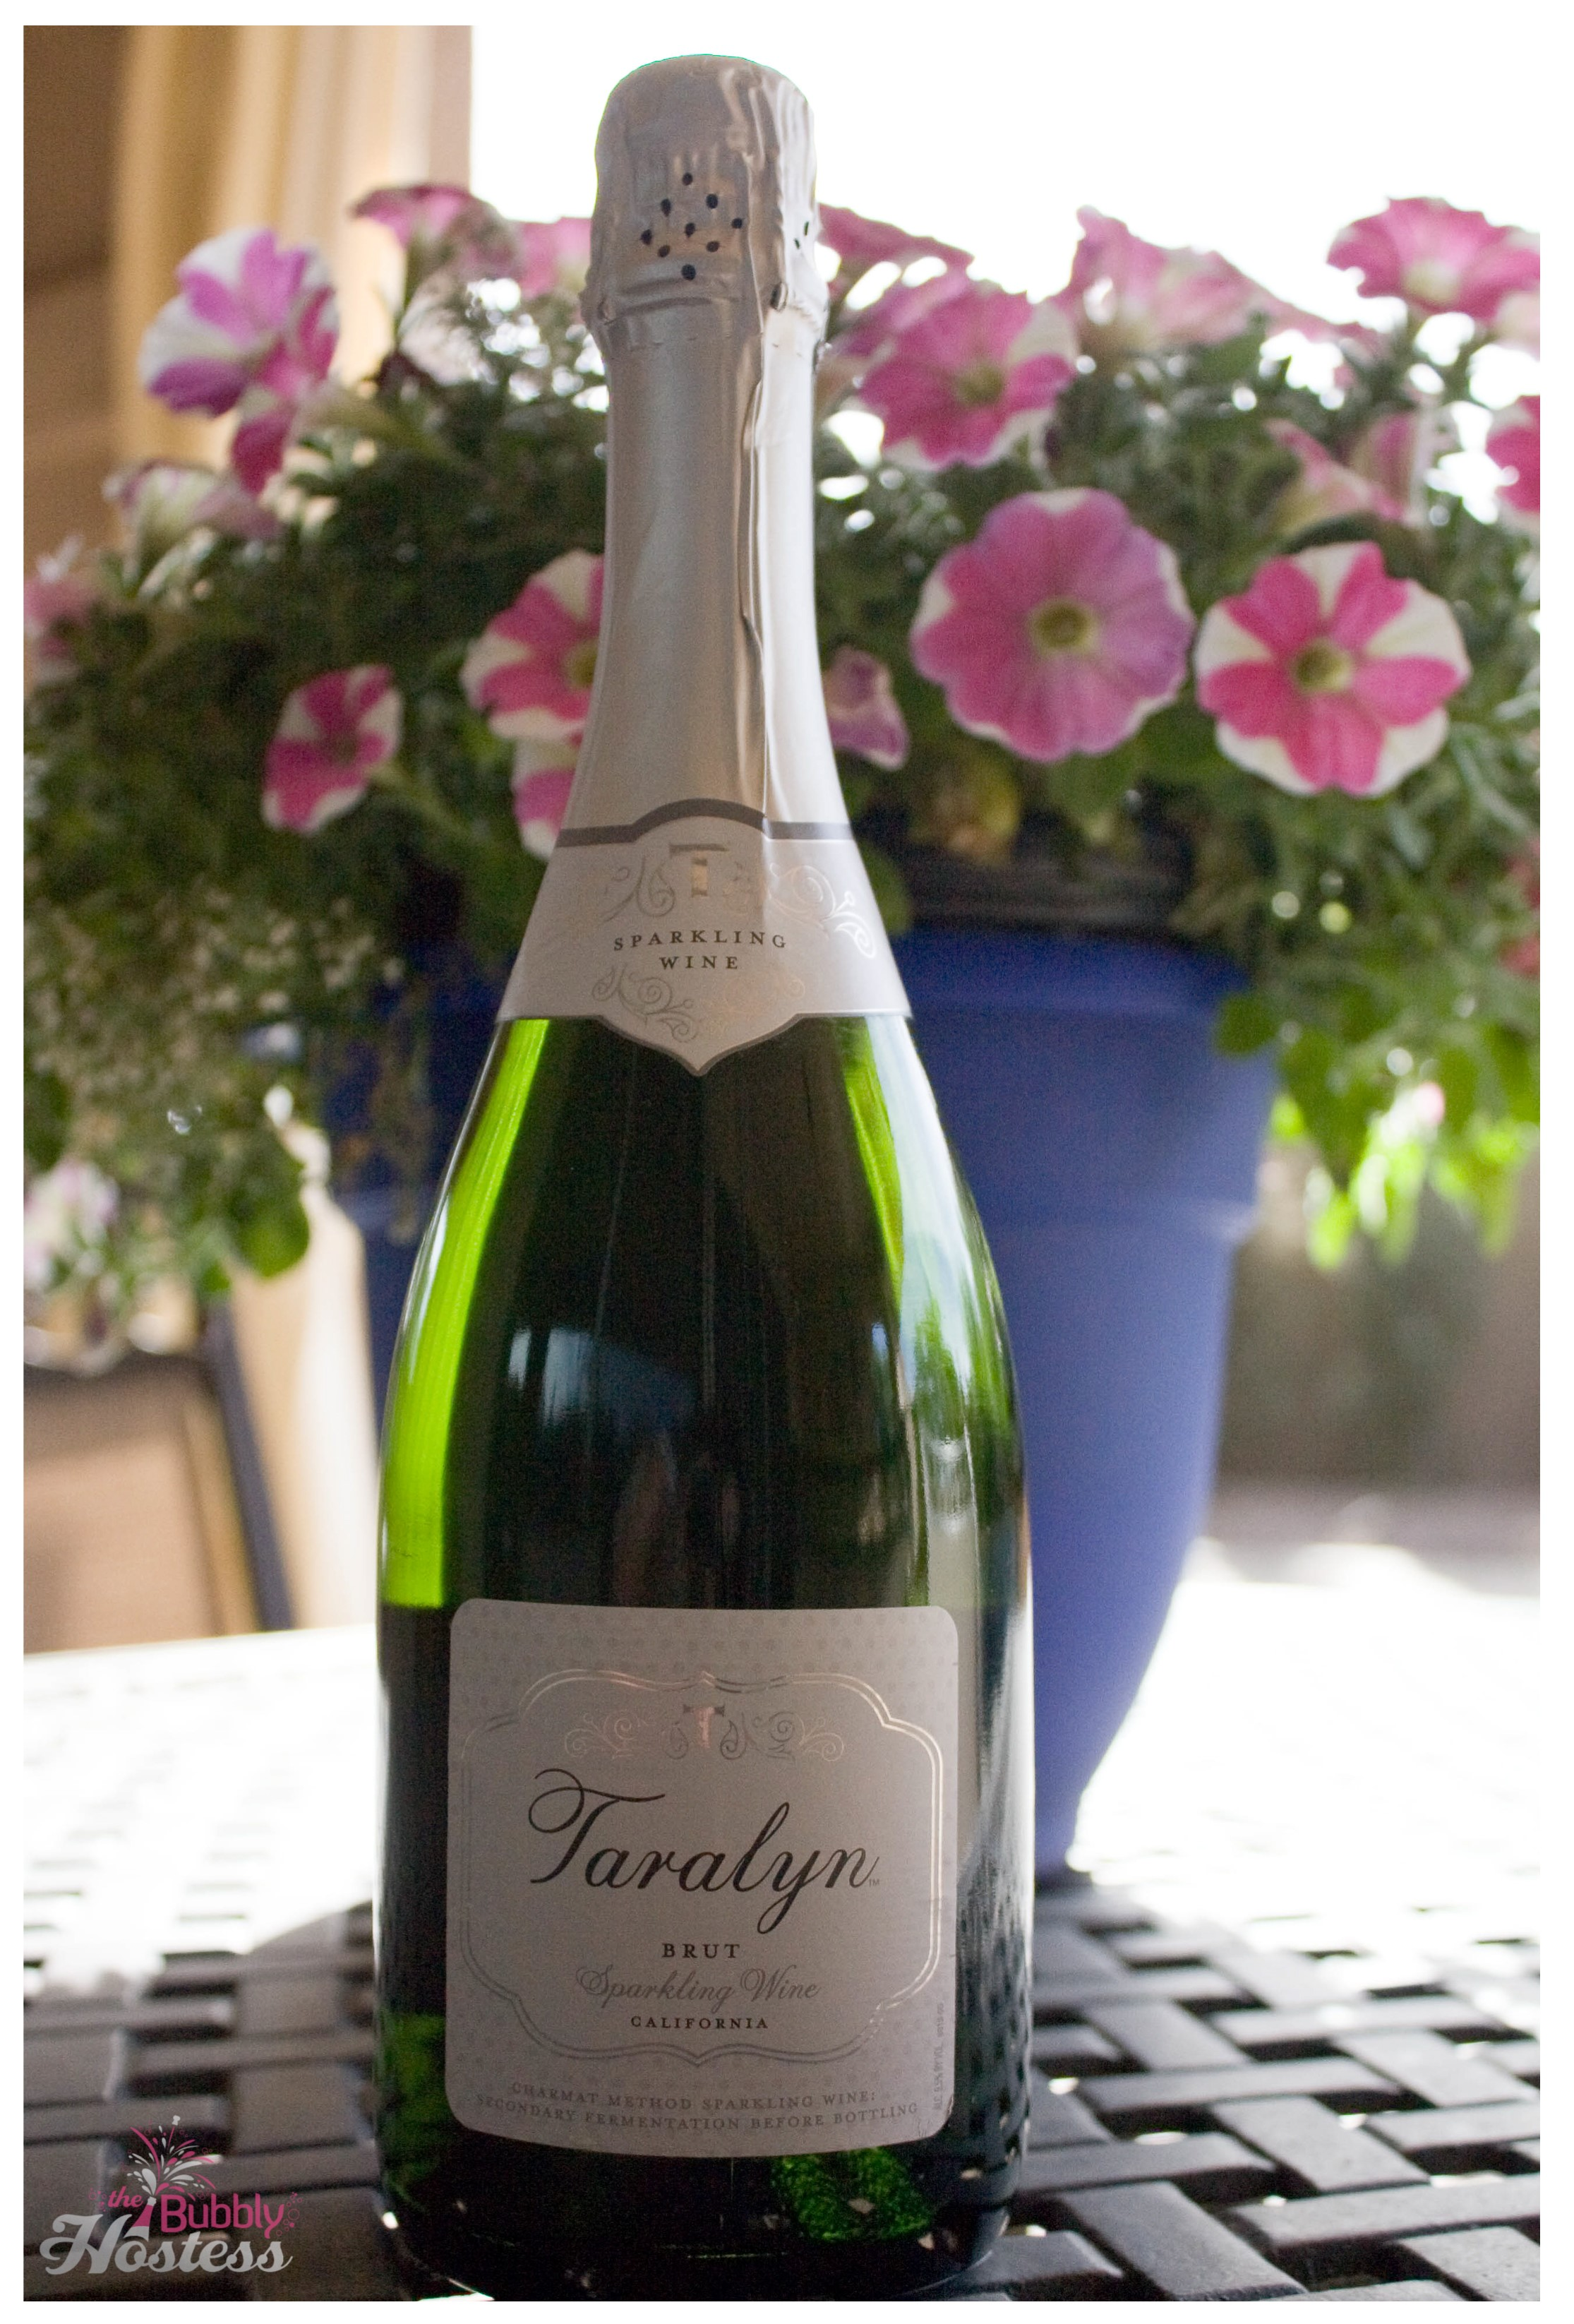 Taralyn Brut Sparkling Wine | The Bubbly Hostess